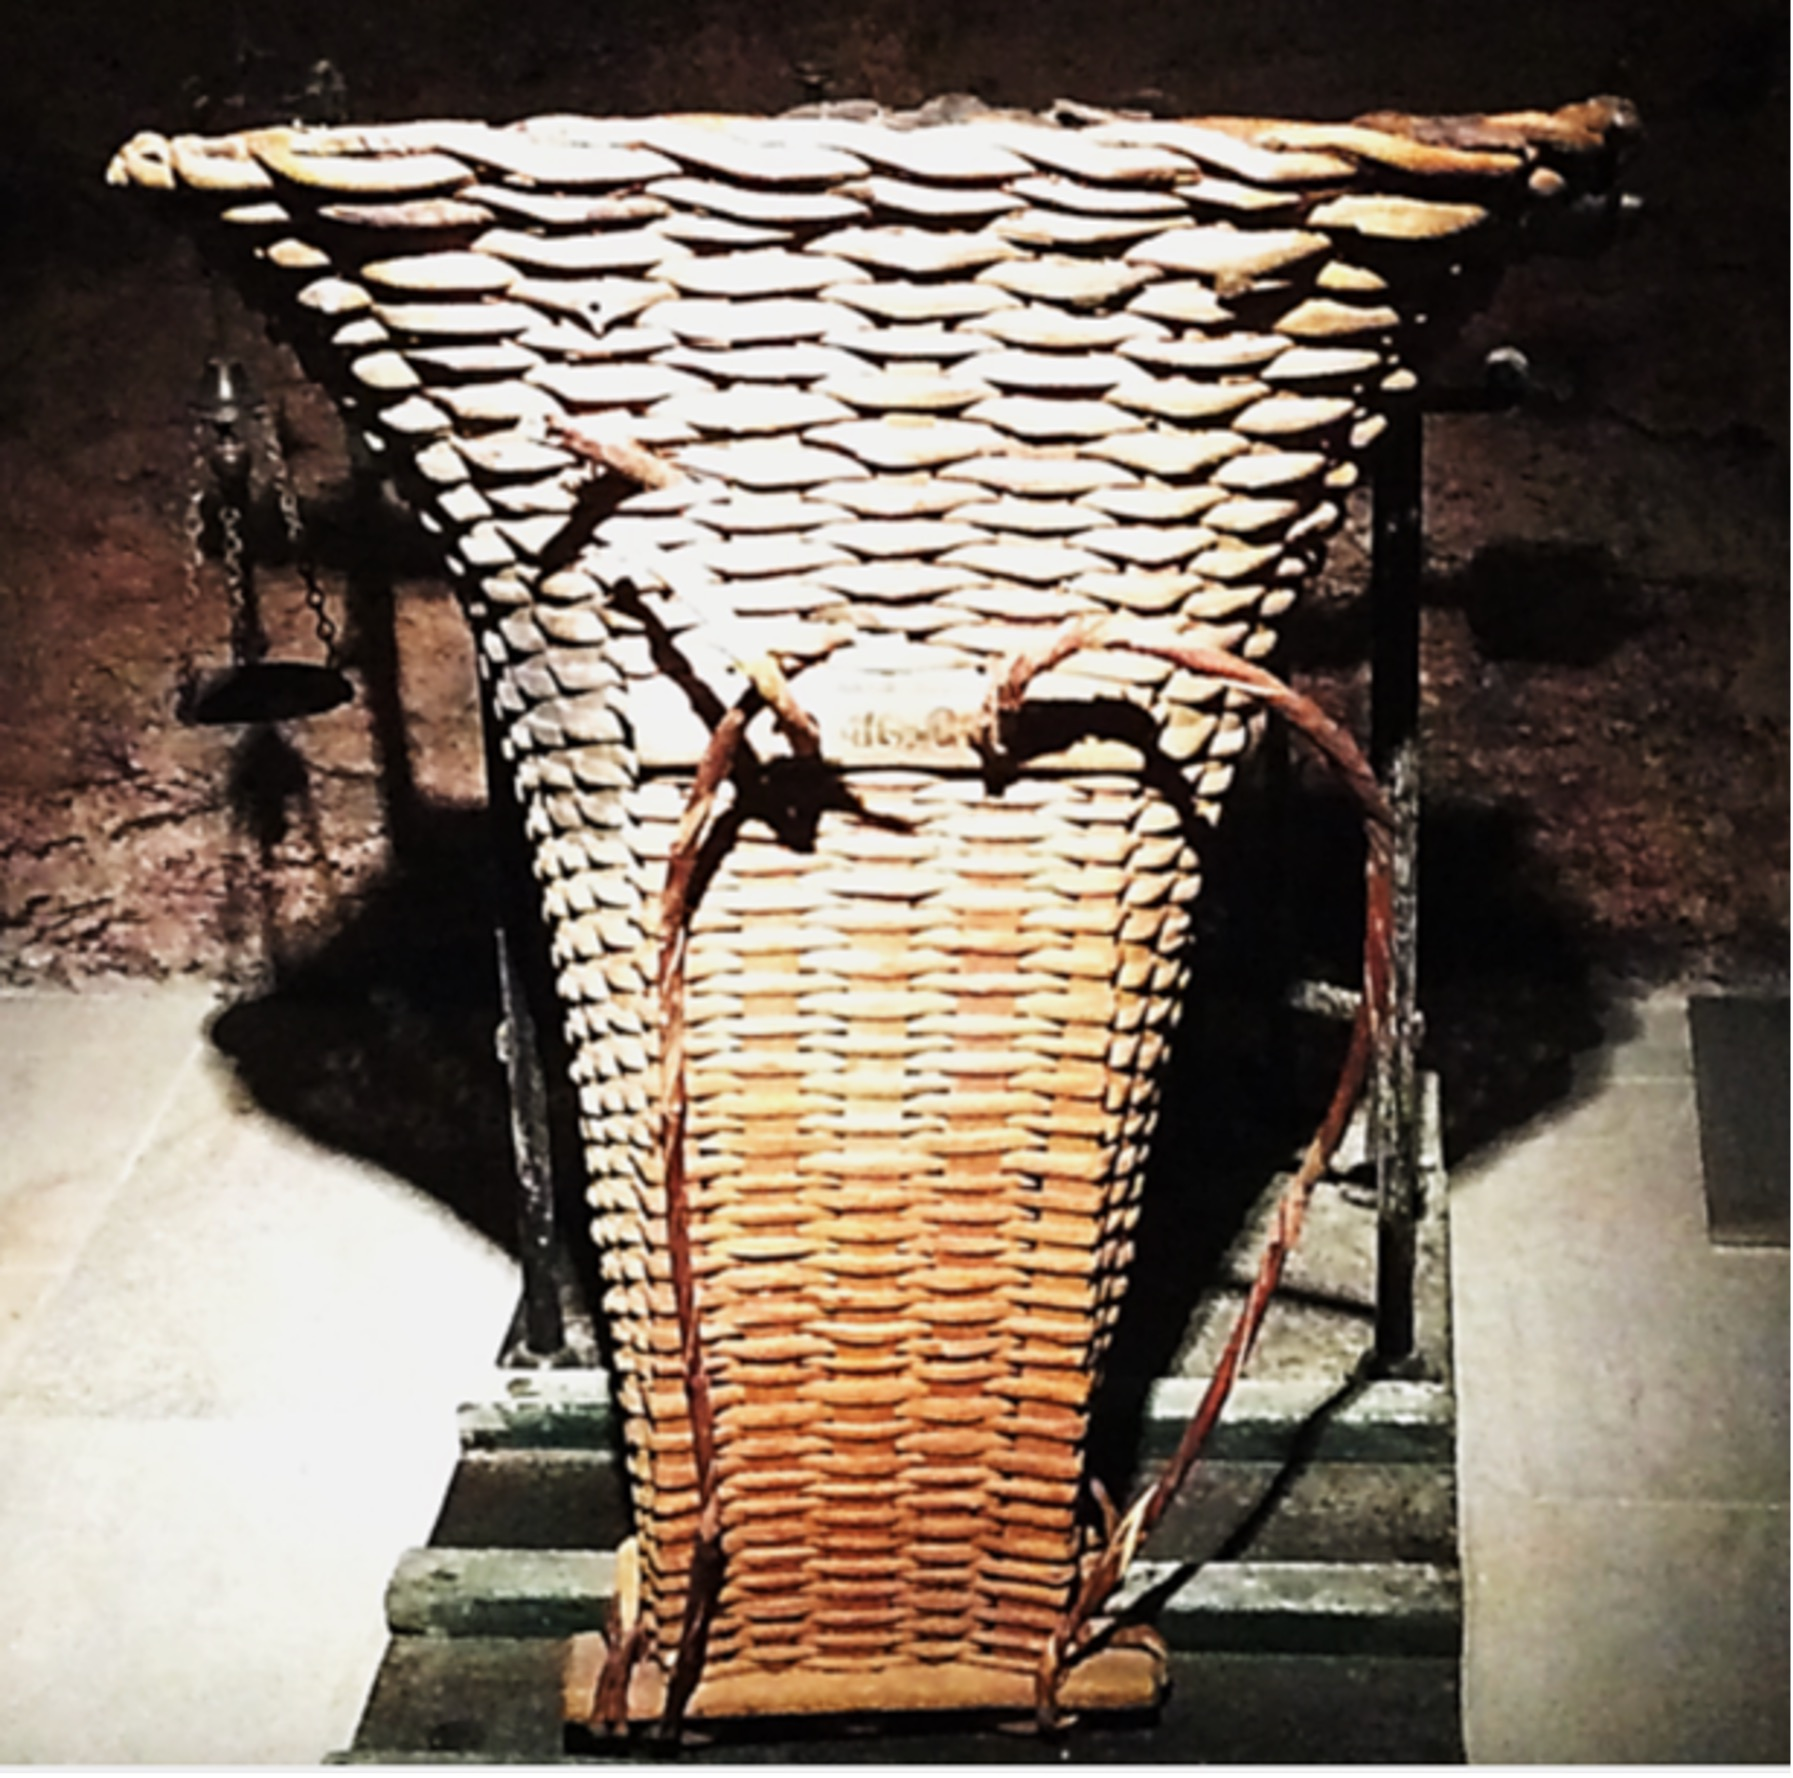 Portini baskets. Photo by J. Micaleff, courtesy of Forbes Magazine